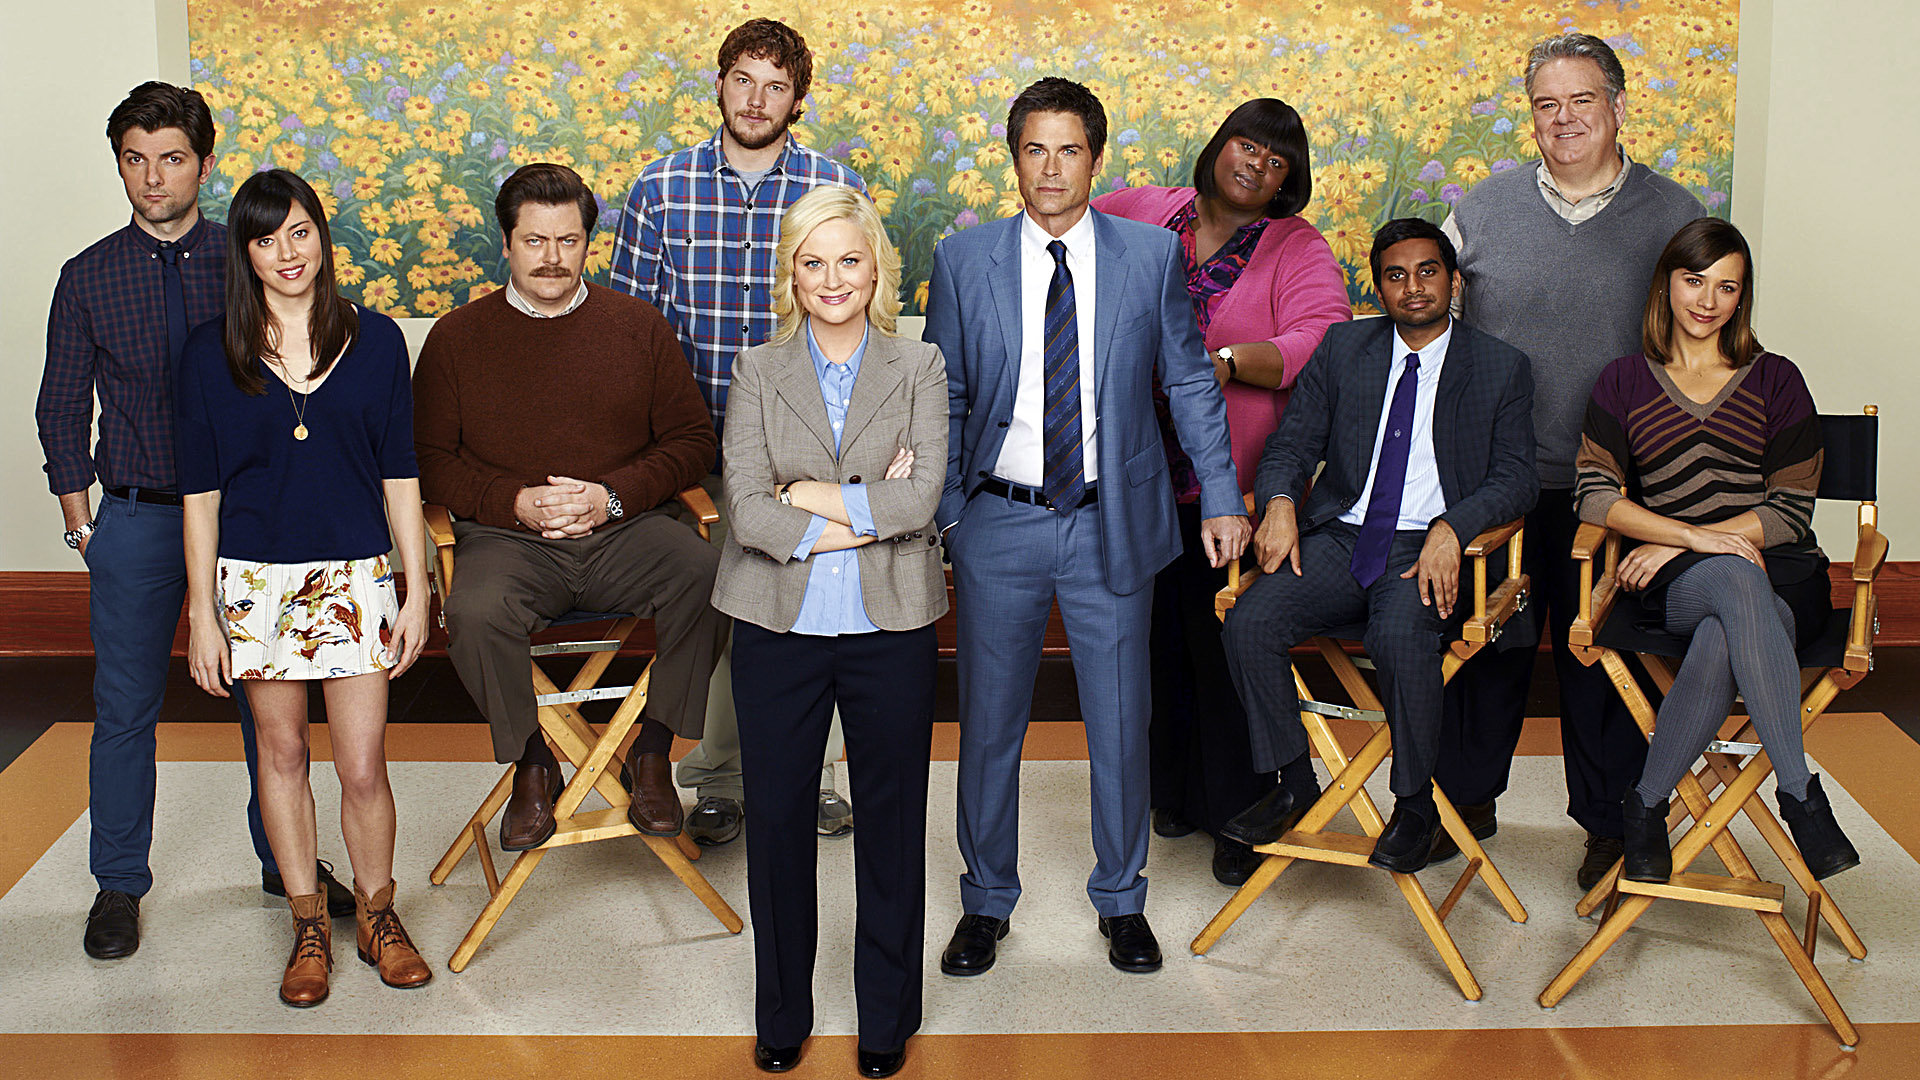 Parks And Recreation Wallpapers 1920x1080 Full Hd 1080p Desktop